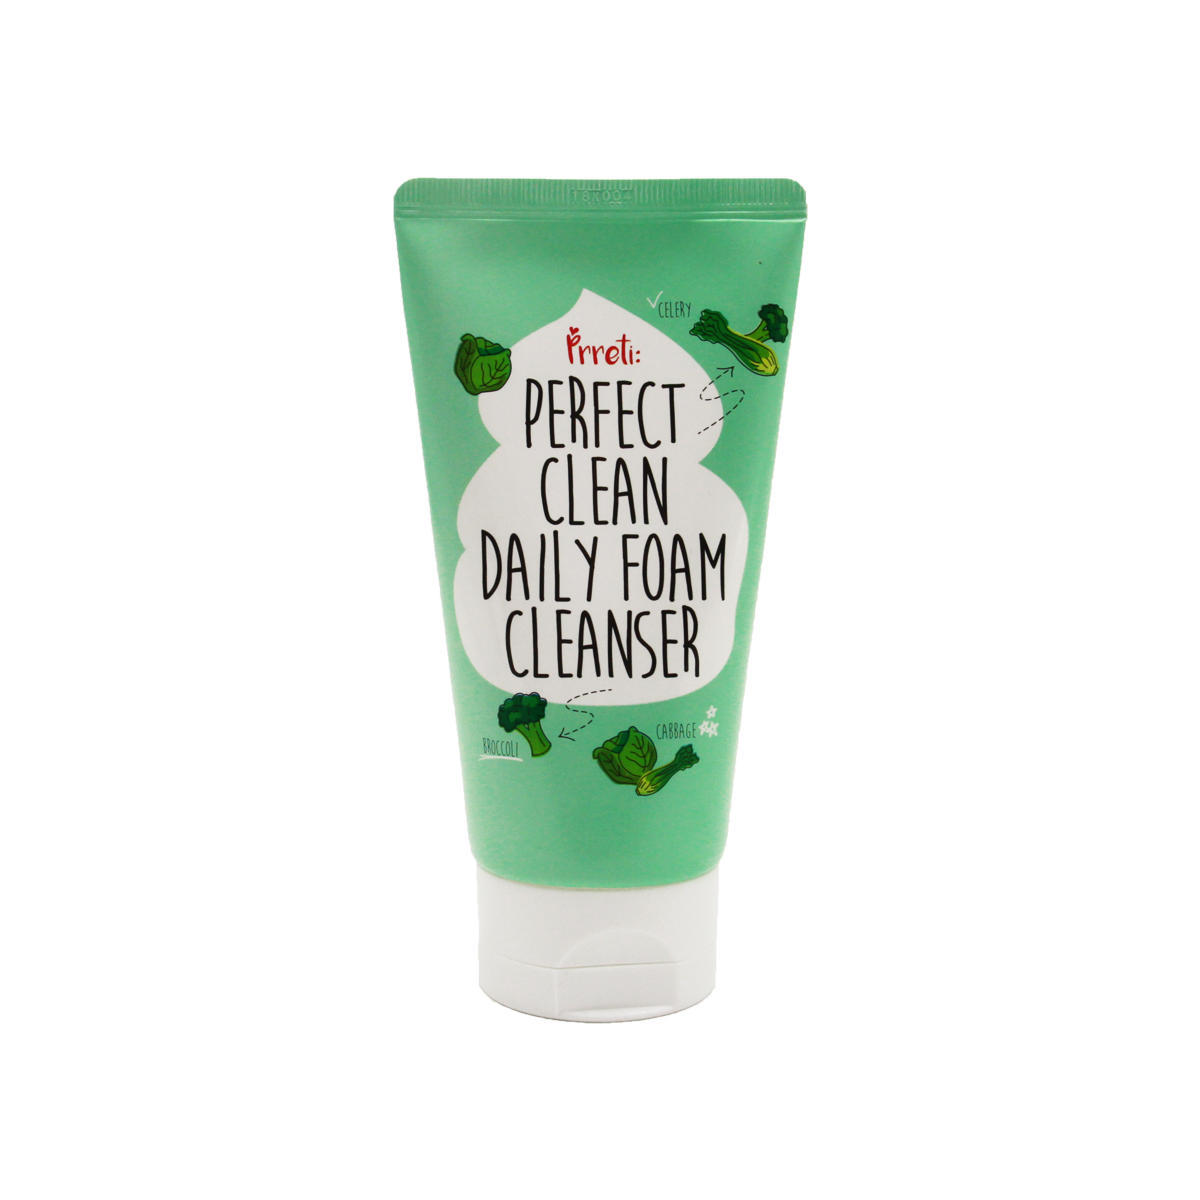 Очищение кожи Очищающая пенка Prreti Perfect Clean Daily Foam Cleanser, 150 мл import_files_b5_b5dba16b5b2d11e980fb3408042974b1_b5dba16c5b2d11e980fb3408042974b1.jpg